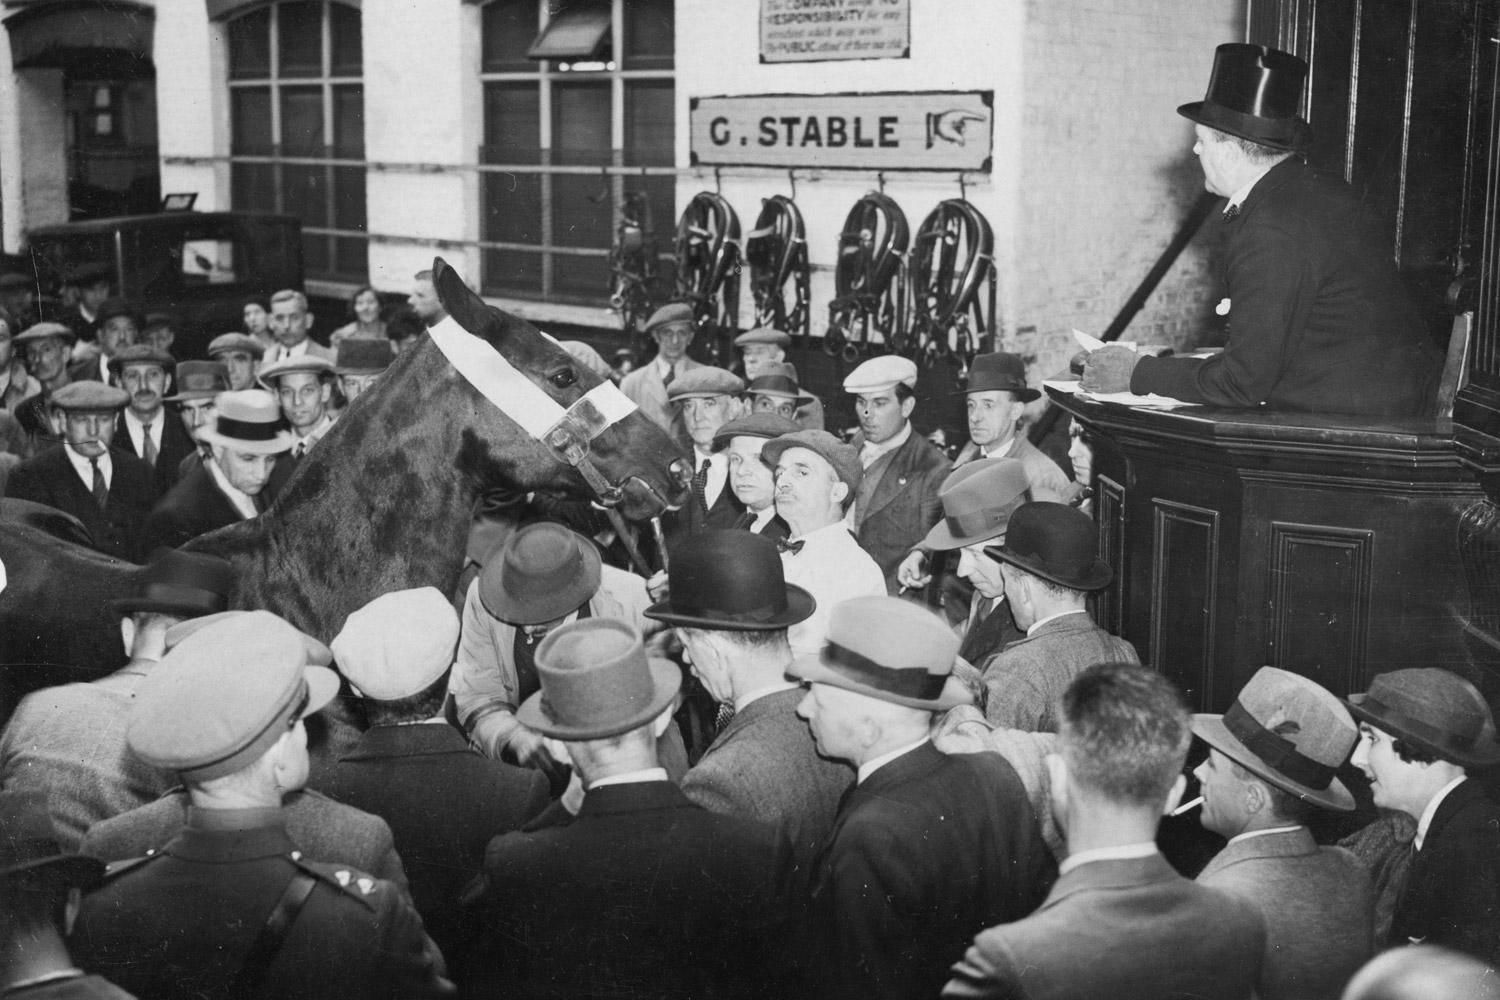 New Kent Road 1937, an auction of army horses in progress at the Elephant and Castle Horse Repository. at 16-18 New Kent Road, where the shopping centre stands today..jpg